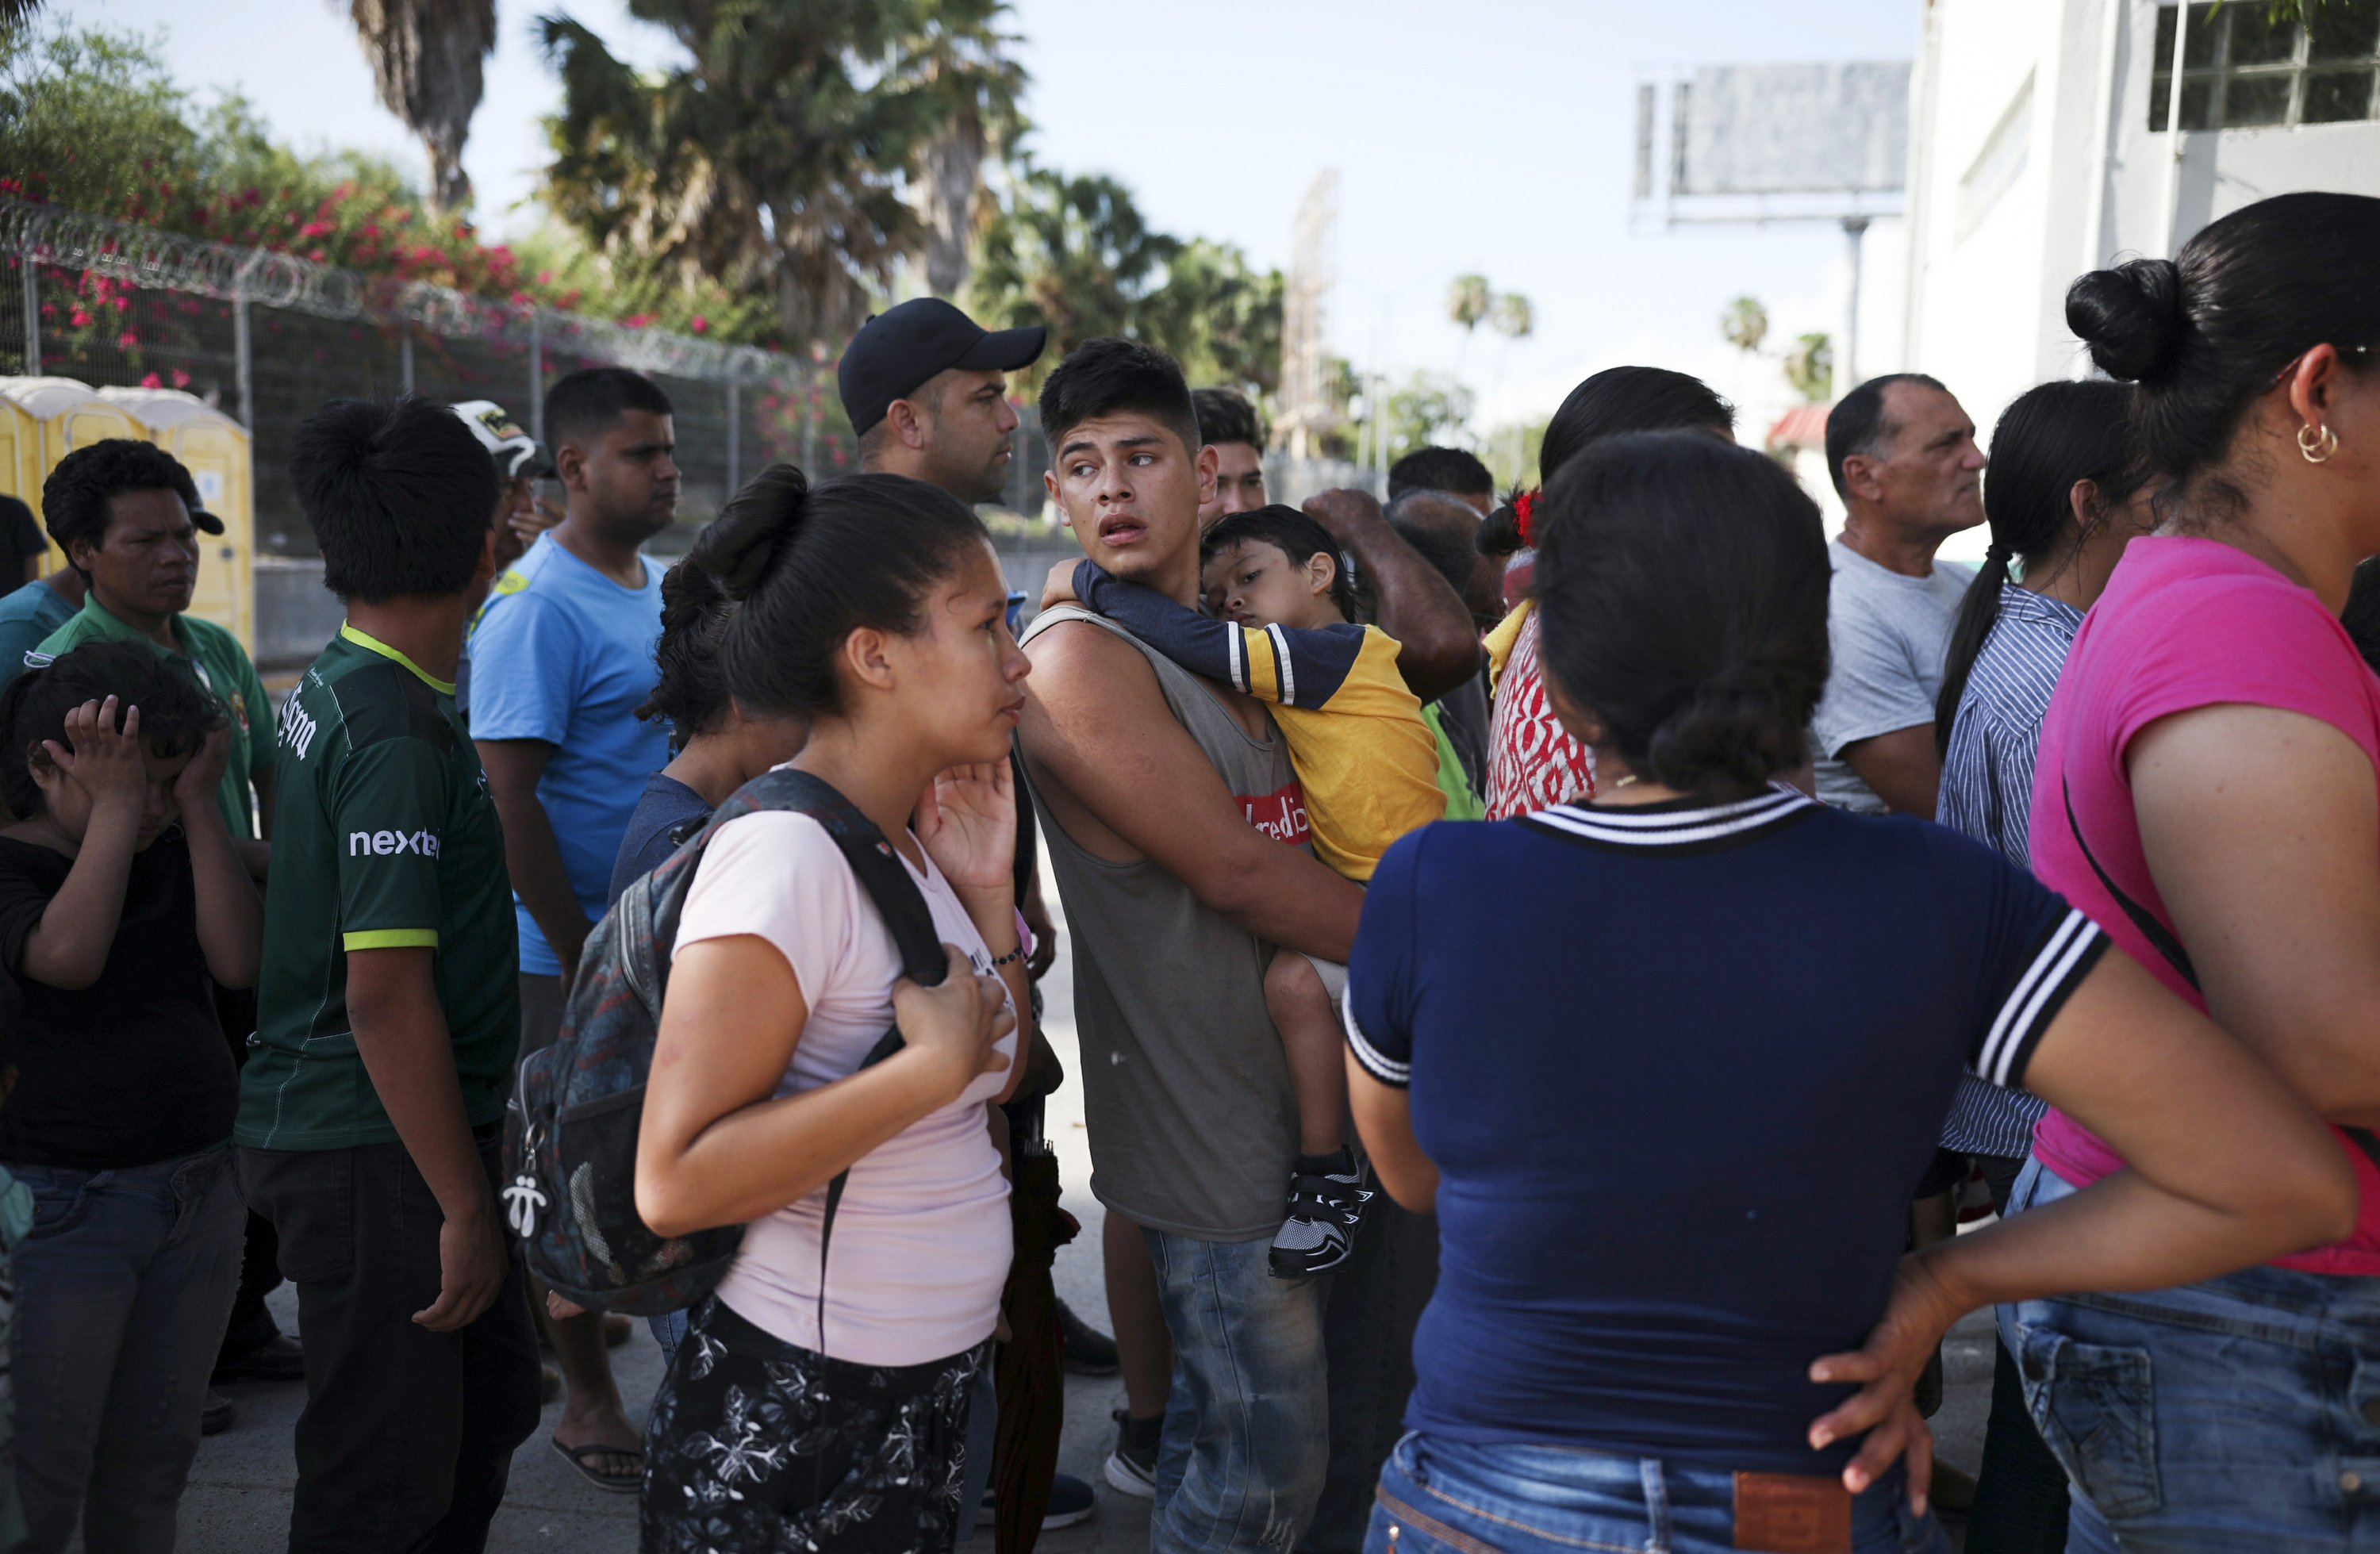 US gives hope to previously denied asylum seekers in camp